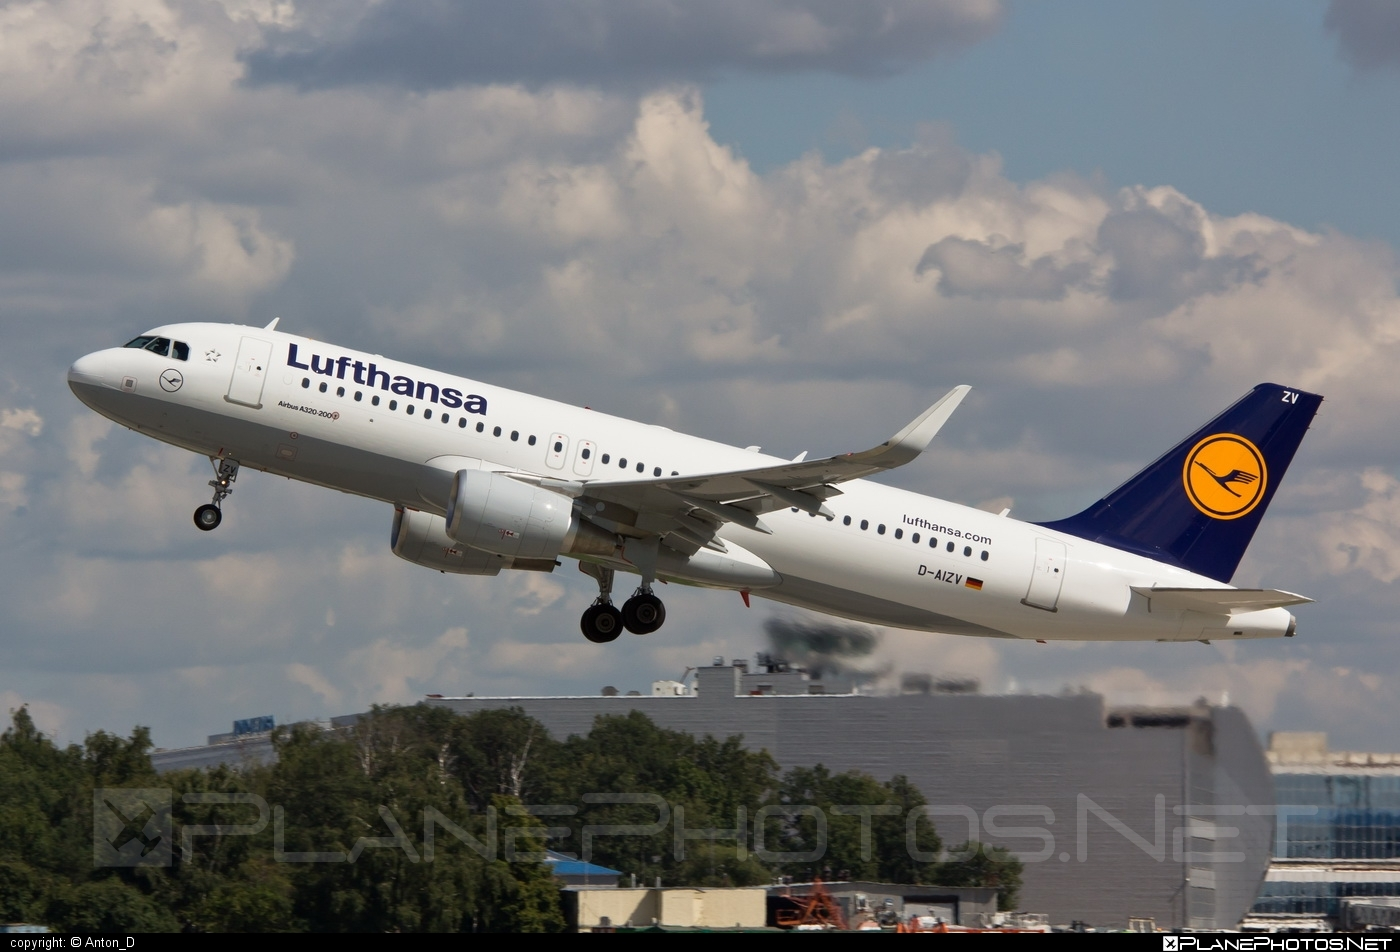 Airbus A320-214 - D-AIZV operated by Lufthansa #a320 #a320family #airbus #airbus320 #lufthansa